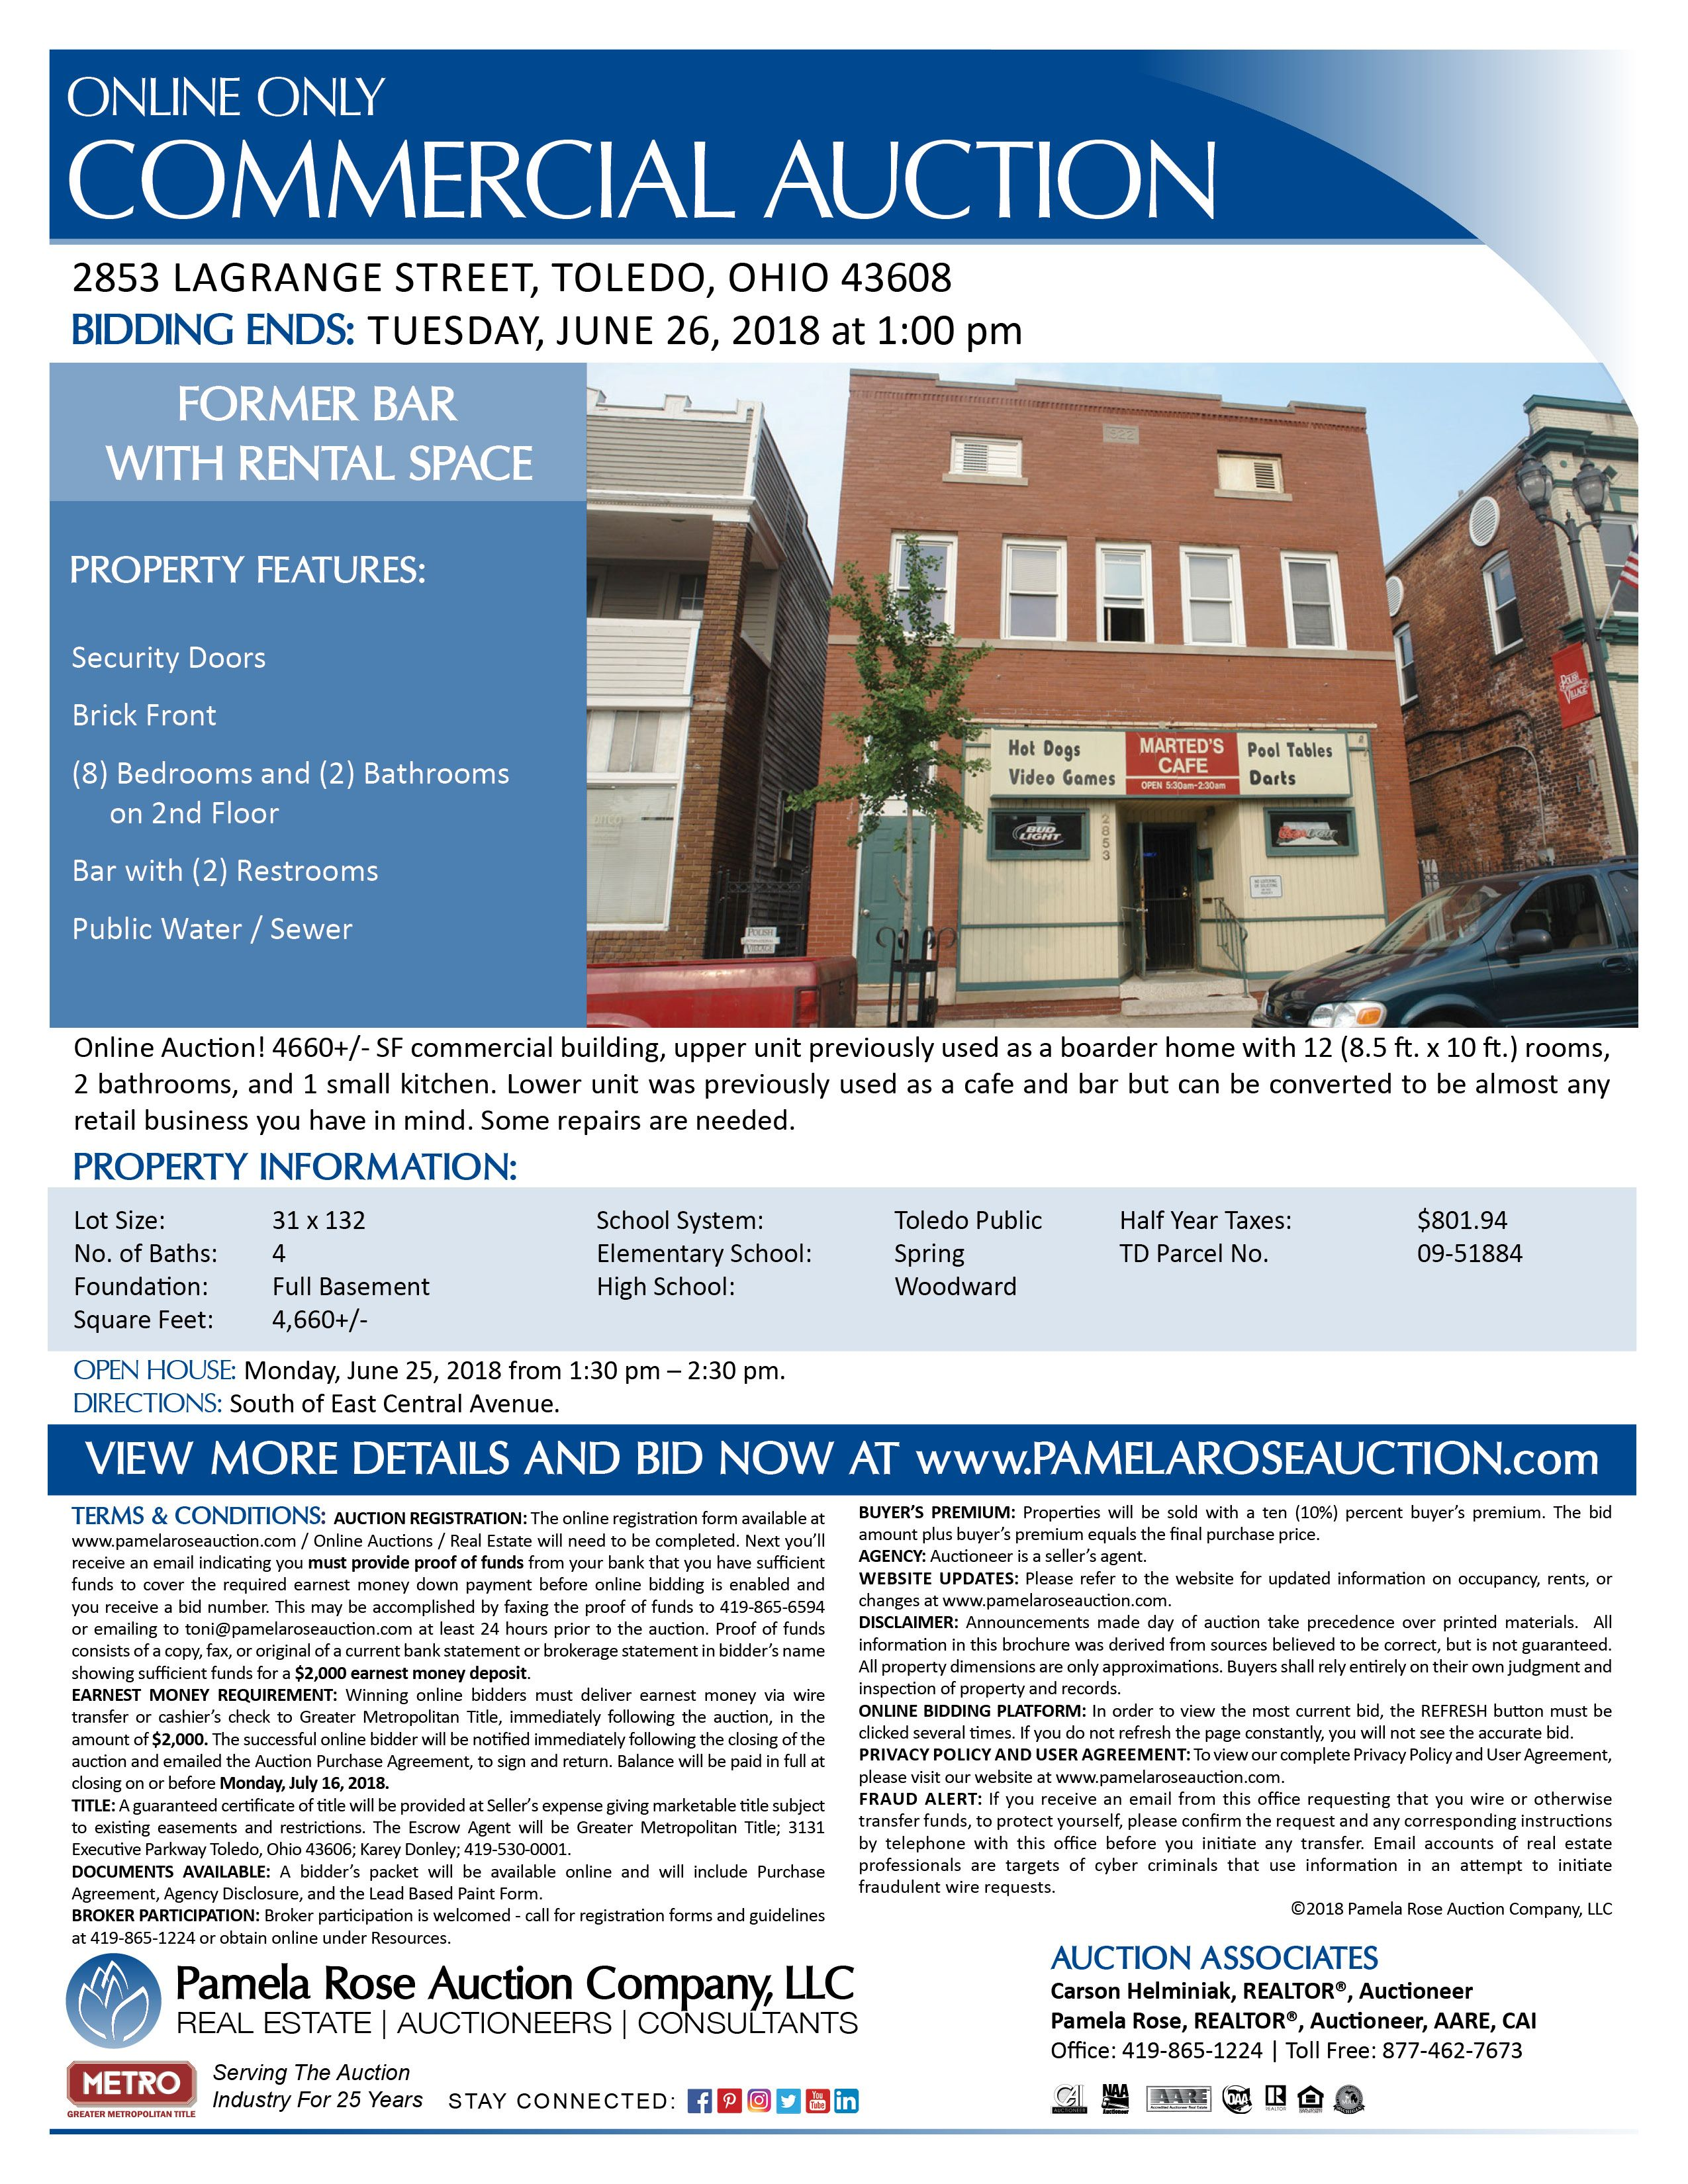 Former Bar With Rental Space Online Auction 2853 Lagrange Street Toledo Ohio 43608 Bidding Ends Tuesday Commercial Property Public Restroom Property